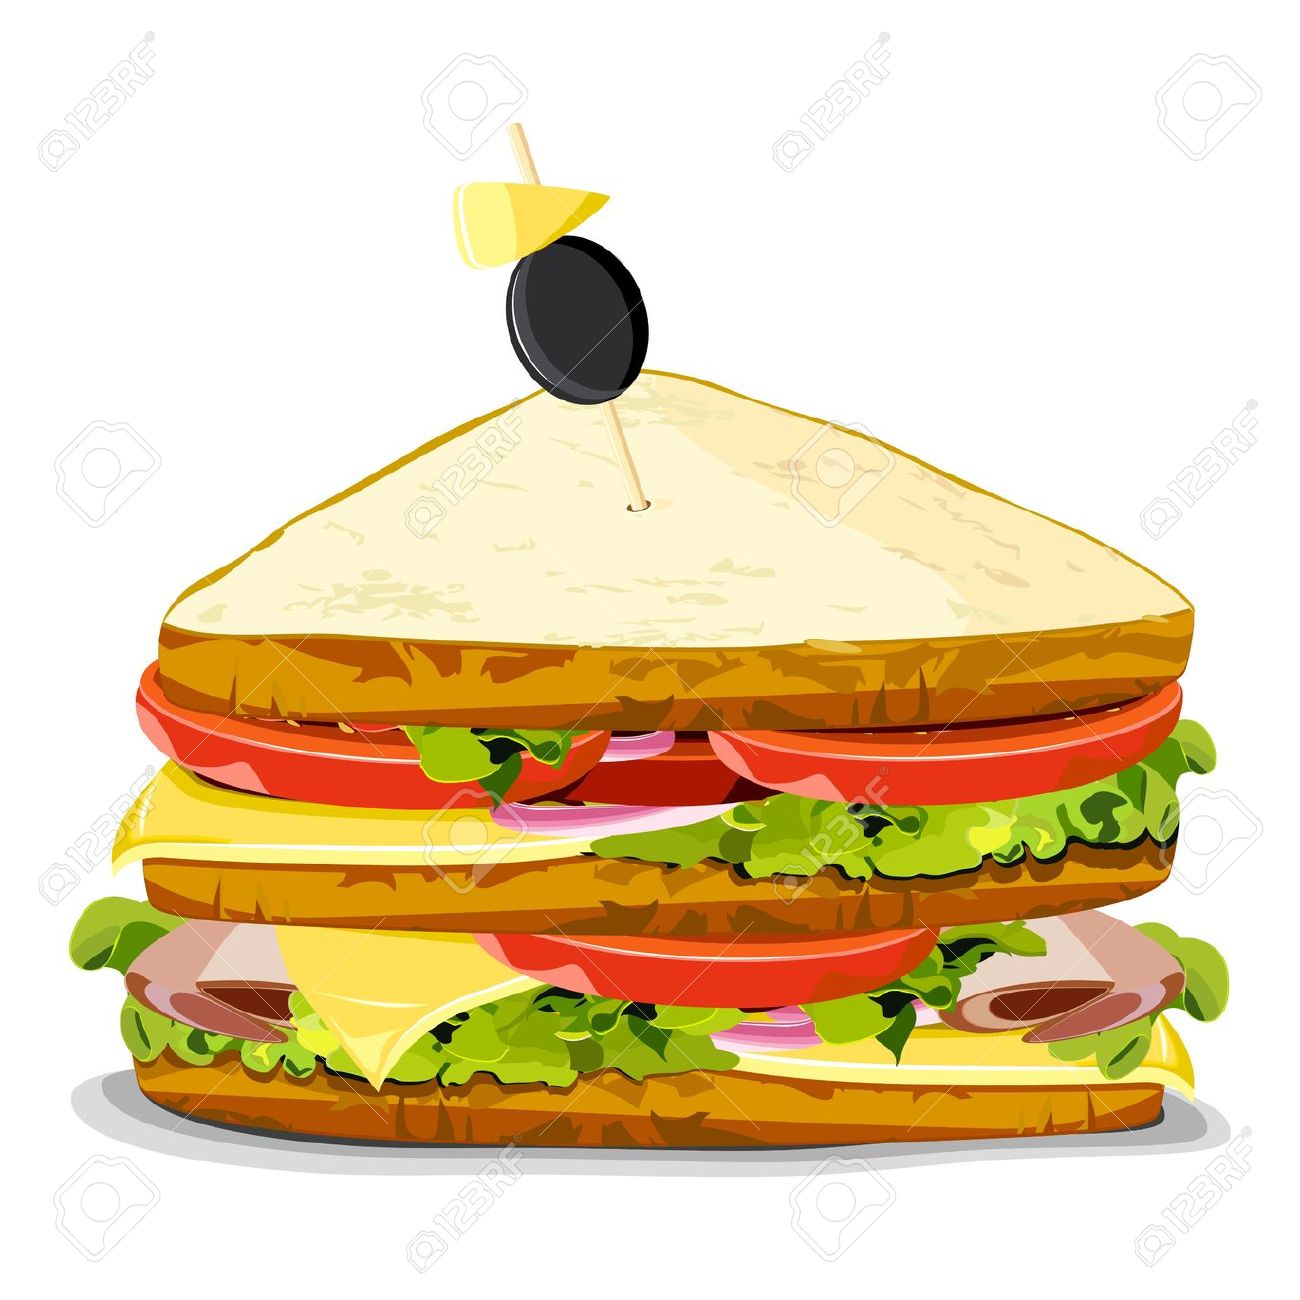 Illustration Of Yummy Sandwich On An Isolated Background Royalty.